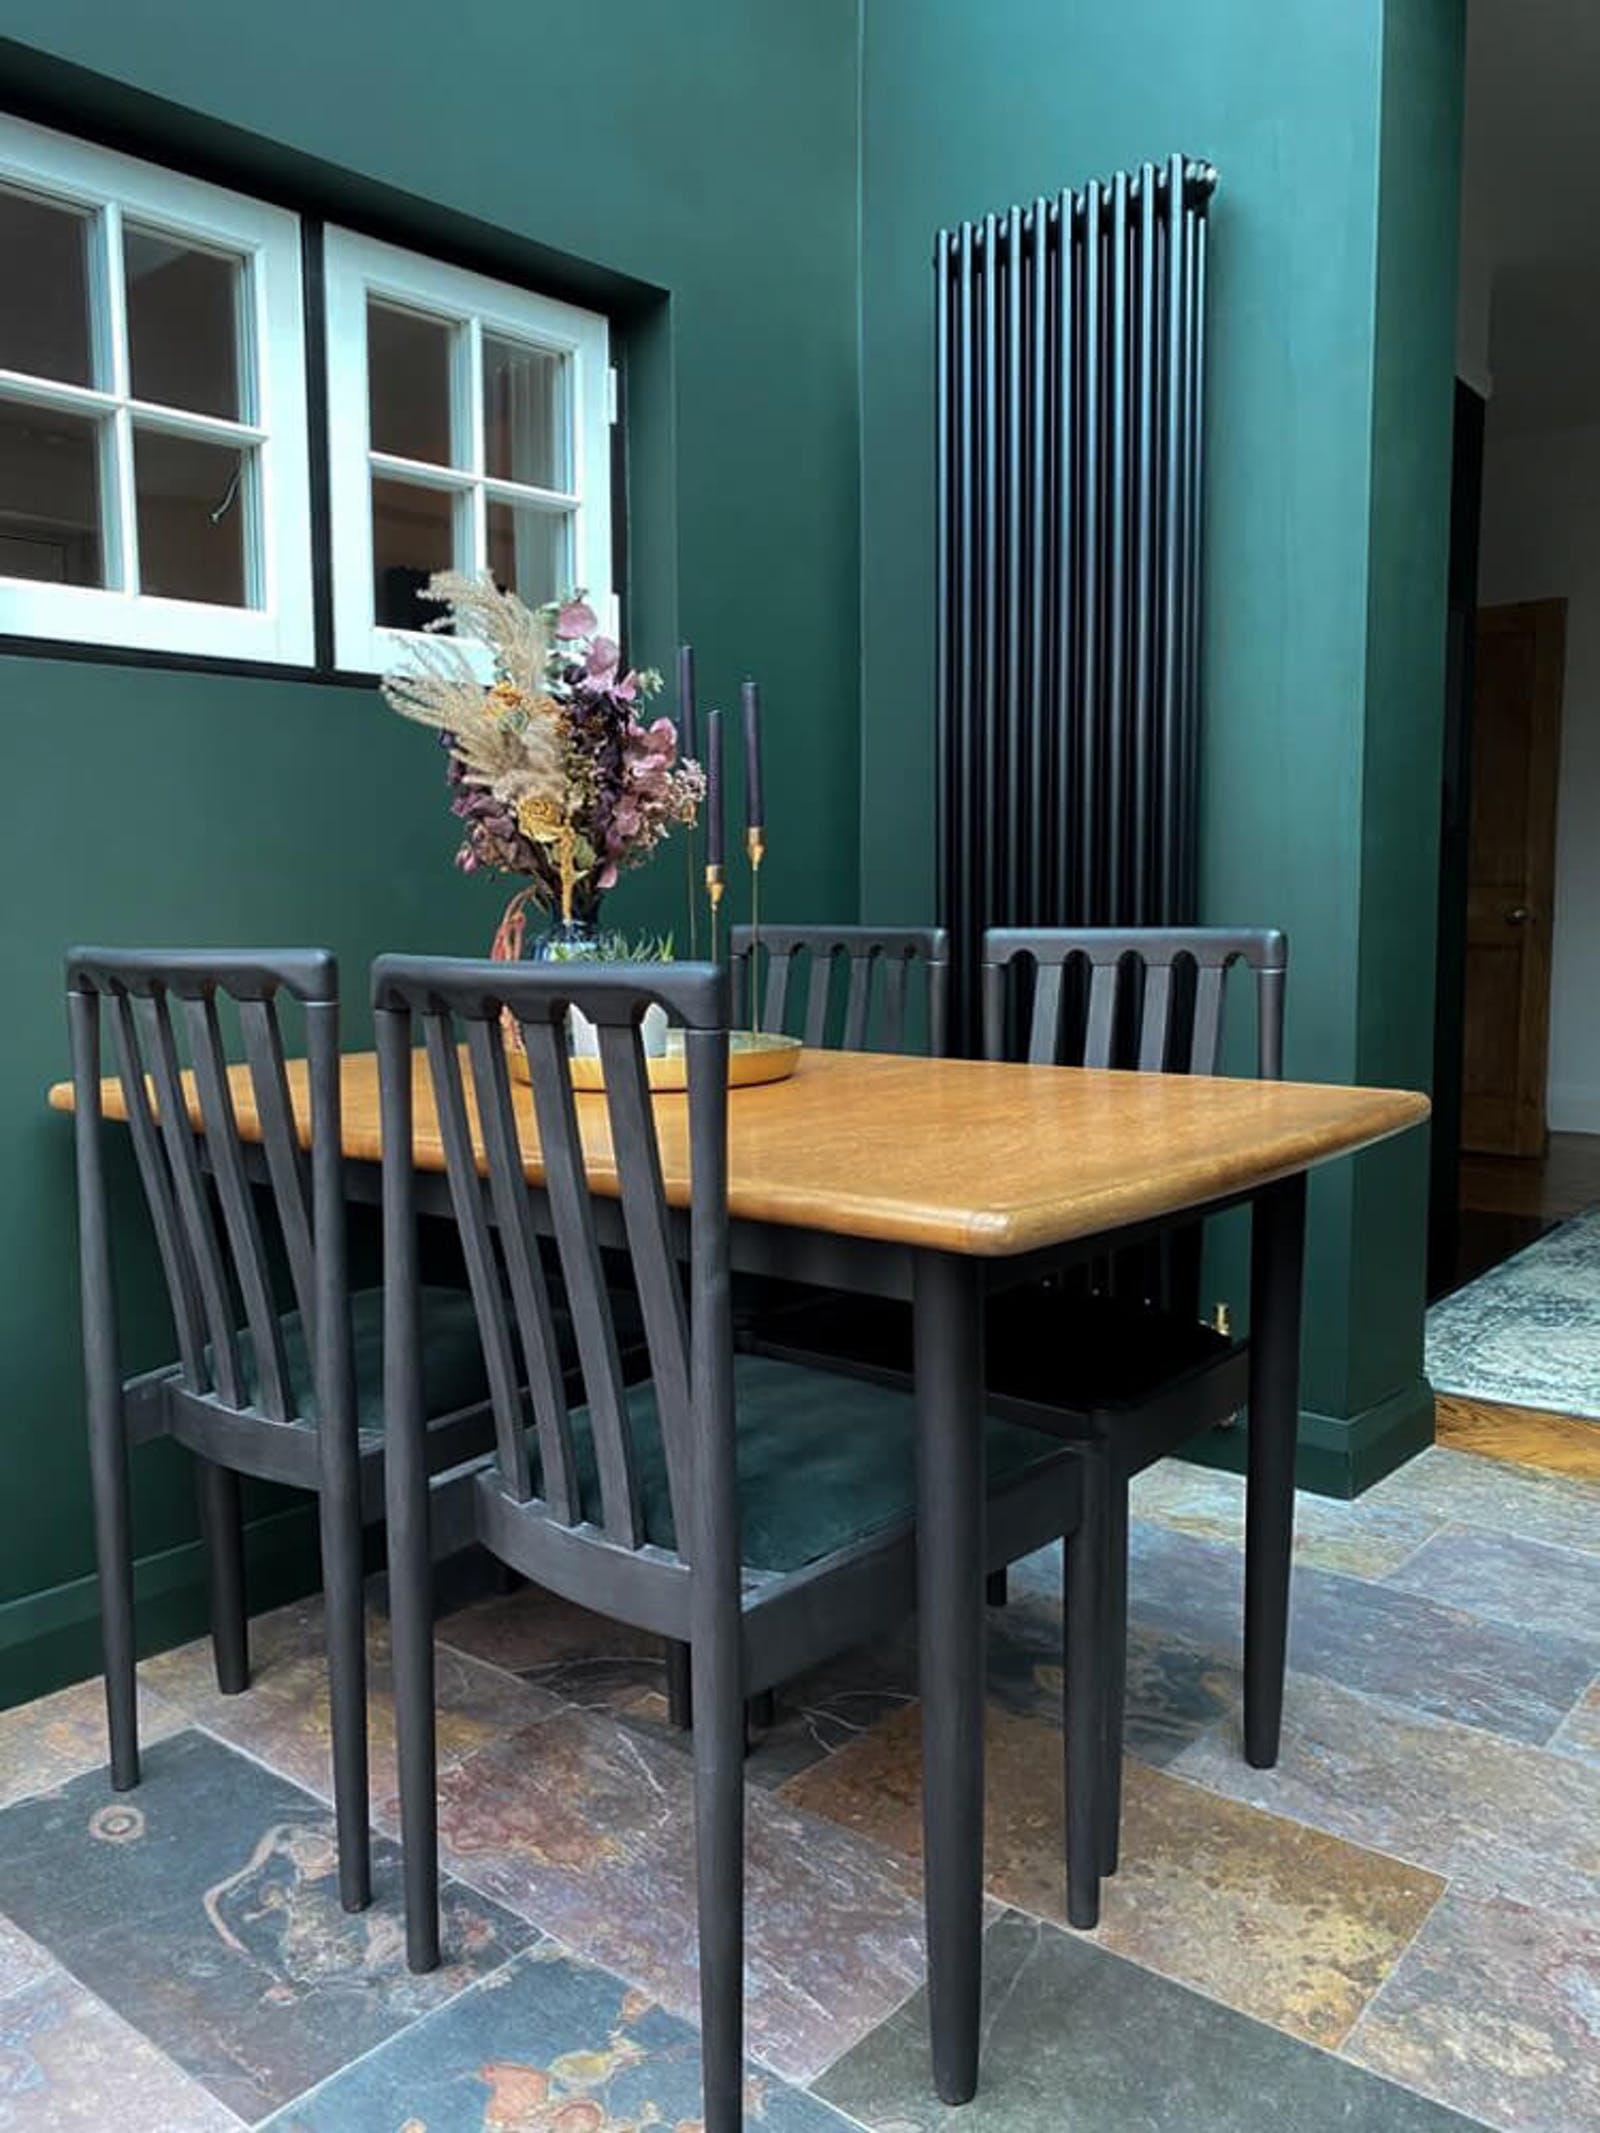 Dining room with dark green walls and dried flowers on the table